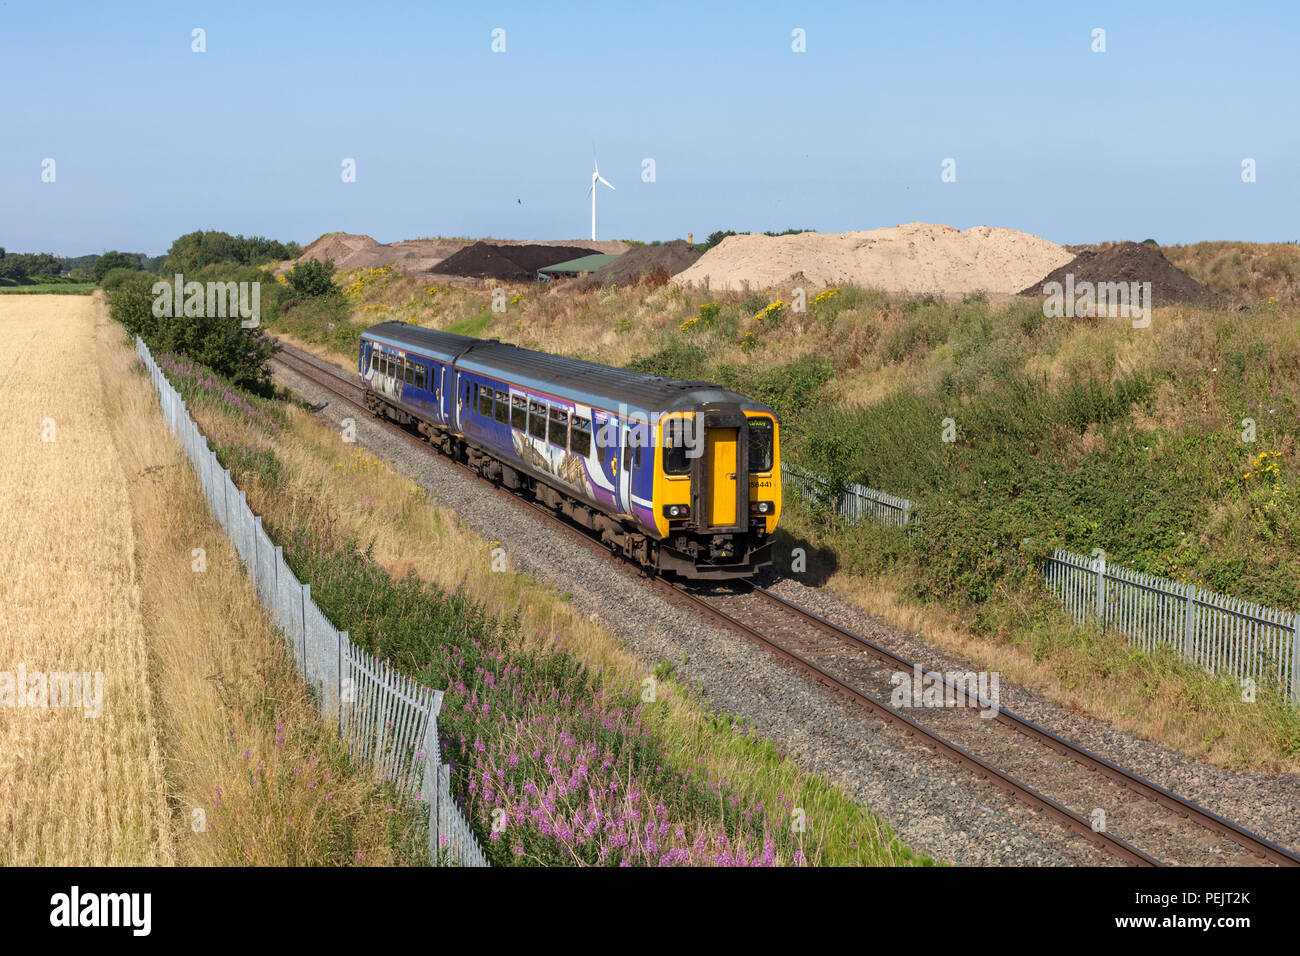 Nortehrn rail class 16 sprinter train 156441  passing Bickerstaffe on the single track Wigan to Kirkby railway line - Stock Image